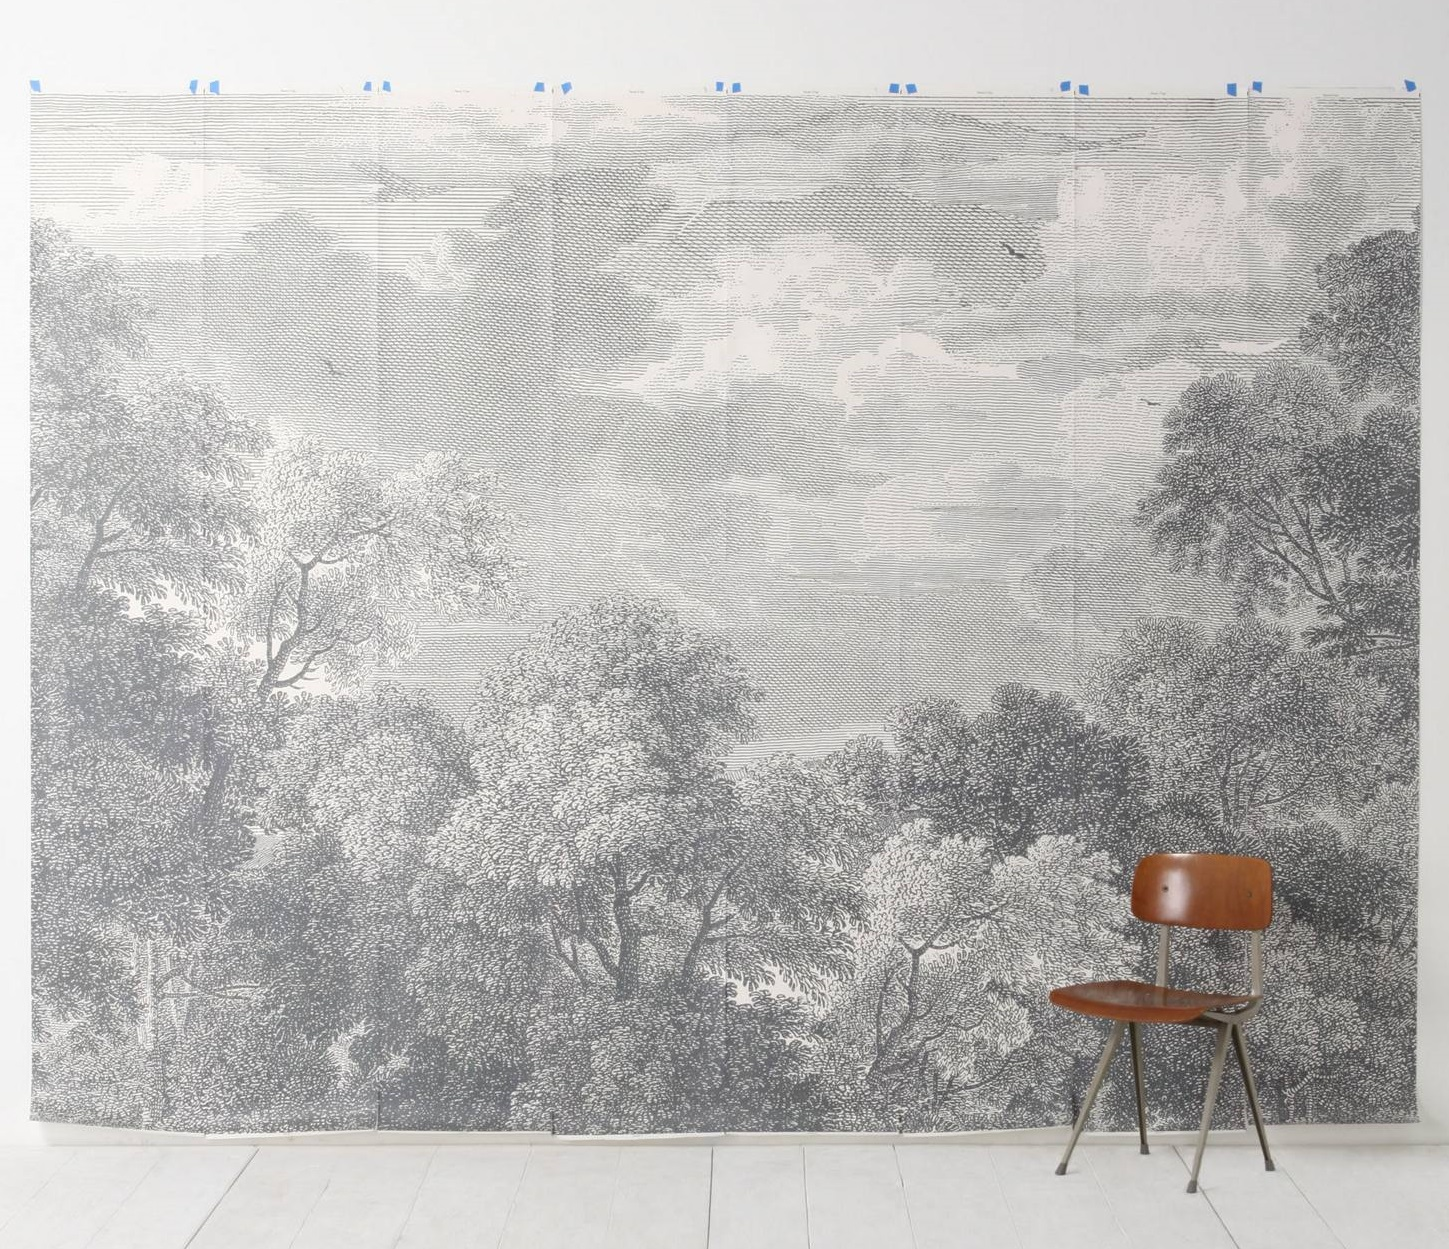 obsessed anthropologie arcadia wall mural brooklyn limestone thursday february 18 2016